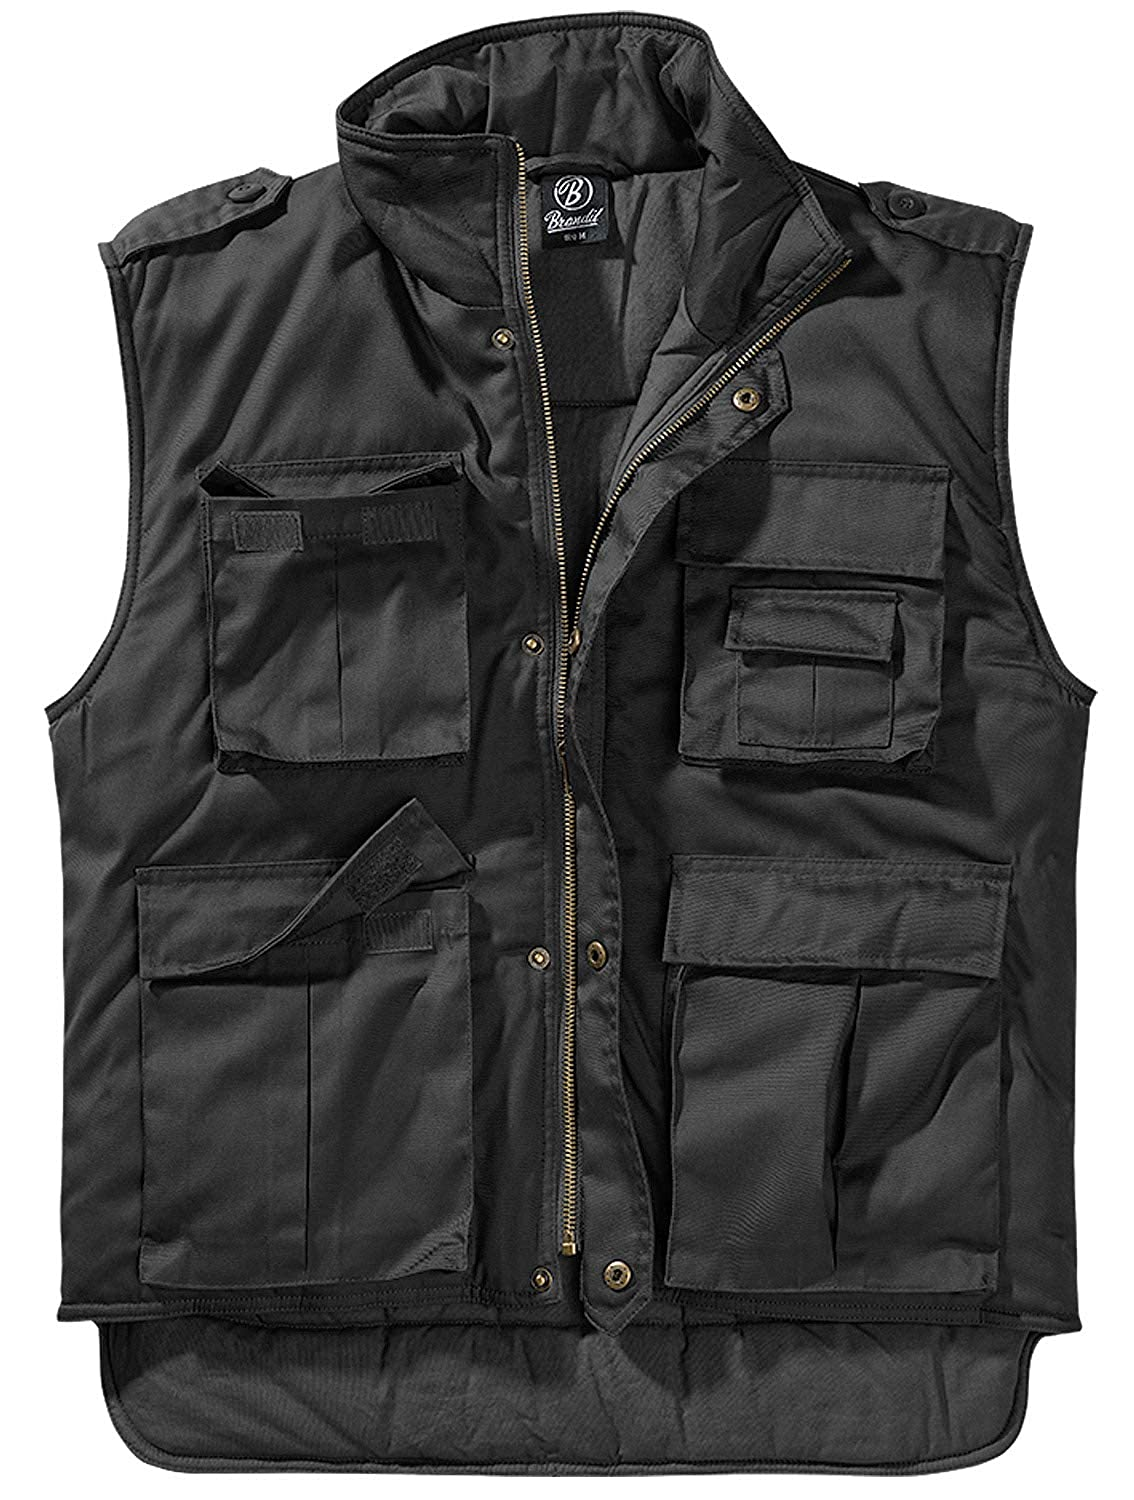 Brandit Ranger Vest Black, Medium